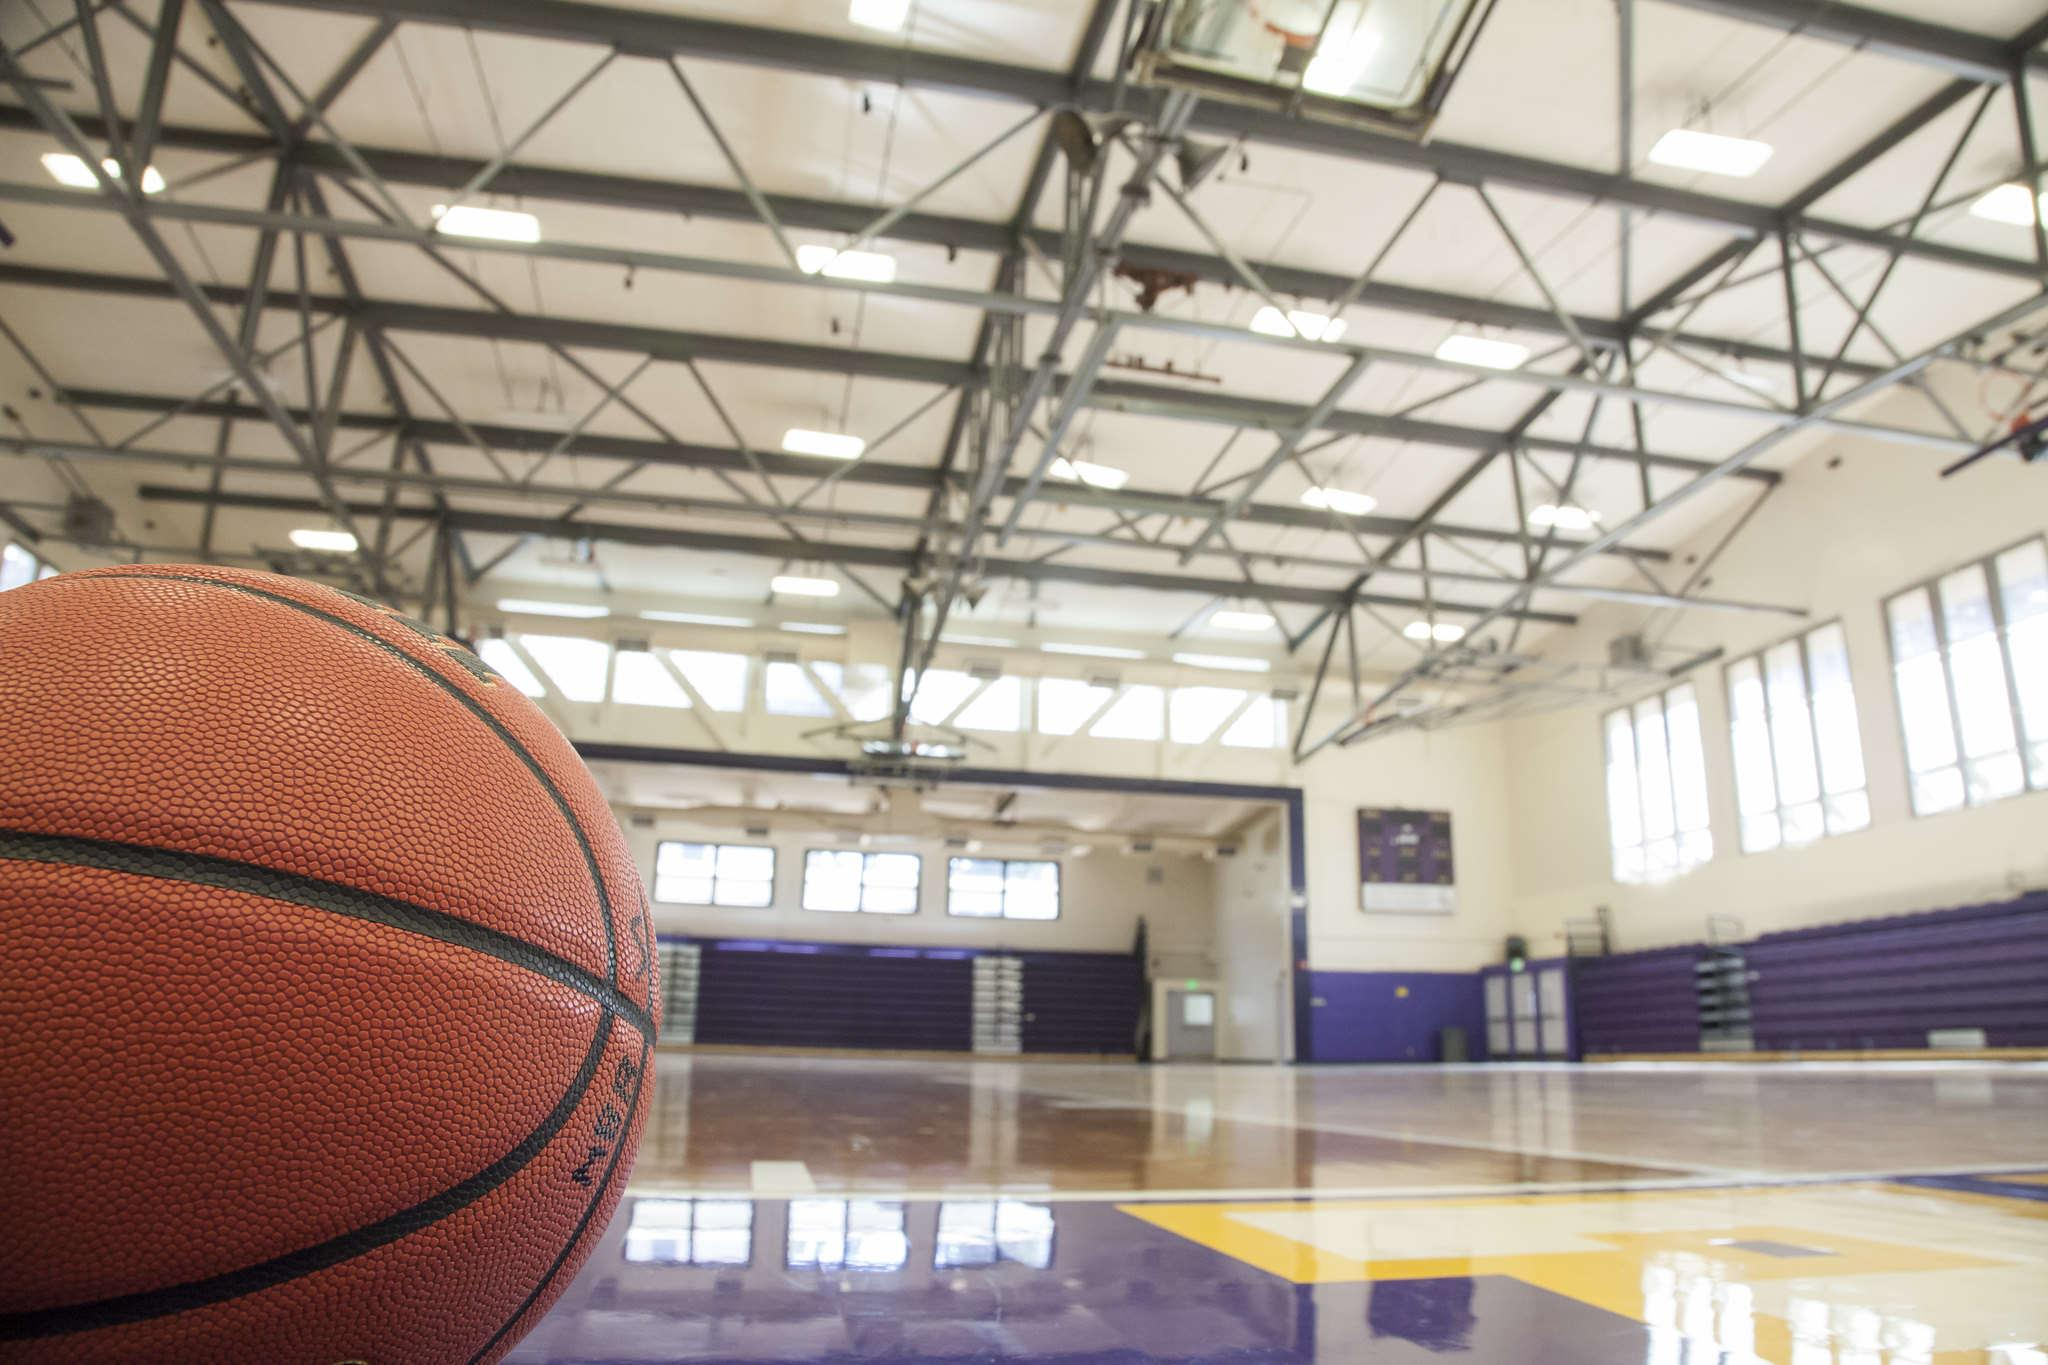 A basketball lies in the gym at SF State as the men's basketball team prepares to begin its season Tuesday, Oct. 21, 2014.